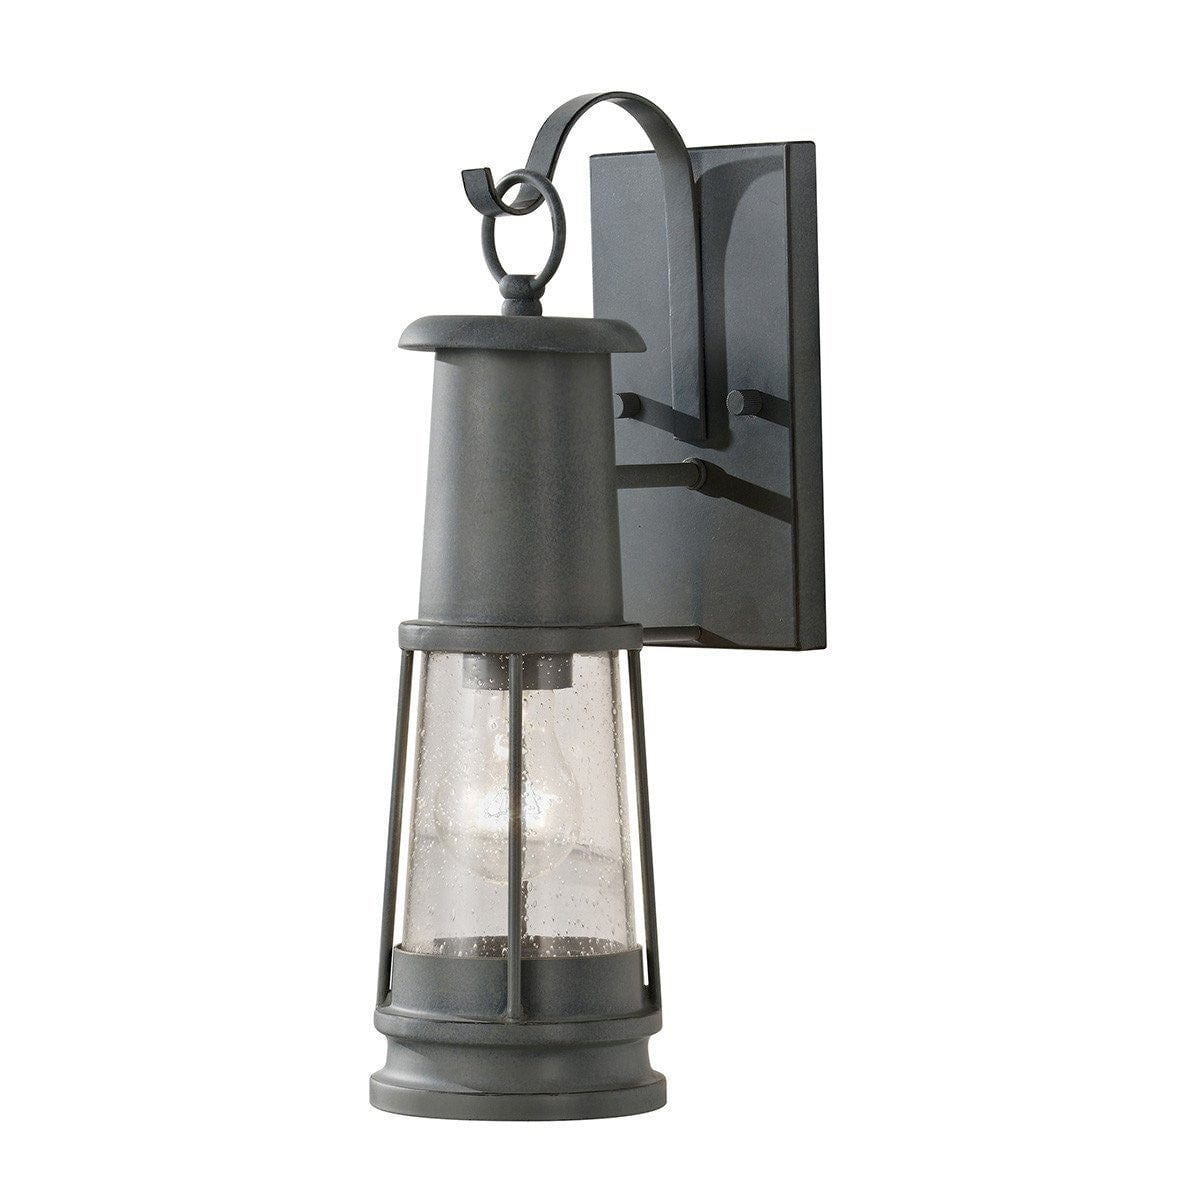 Elstead Chelsea Harbour Storm Cloud Finish Outdoor Wall Lantern